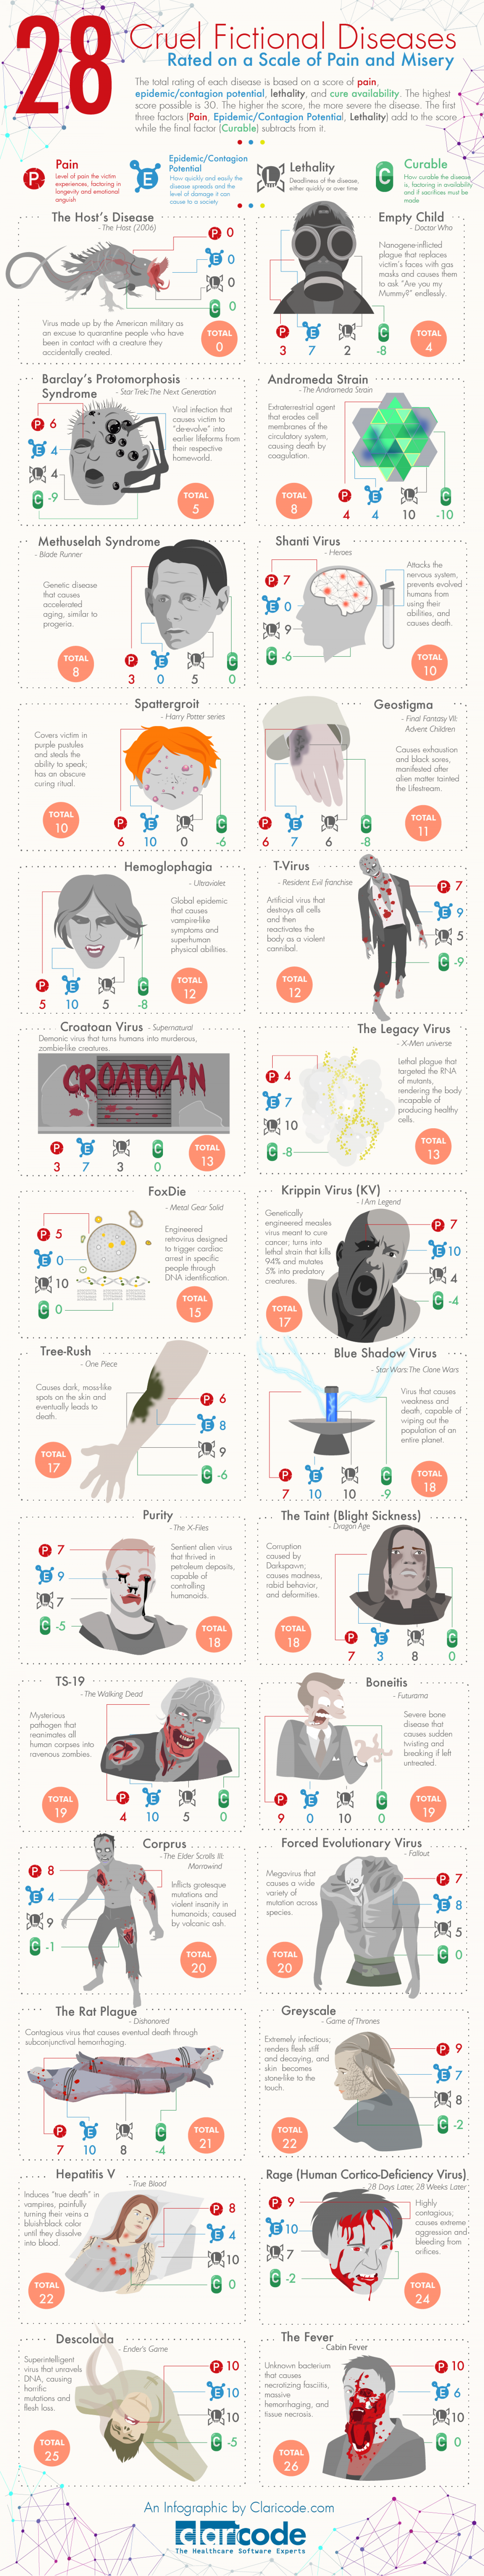 28 Cruel Fictional Diseases Rated on a Scale of Pain and Misery Infographic